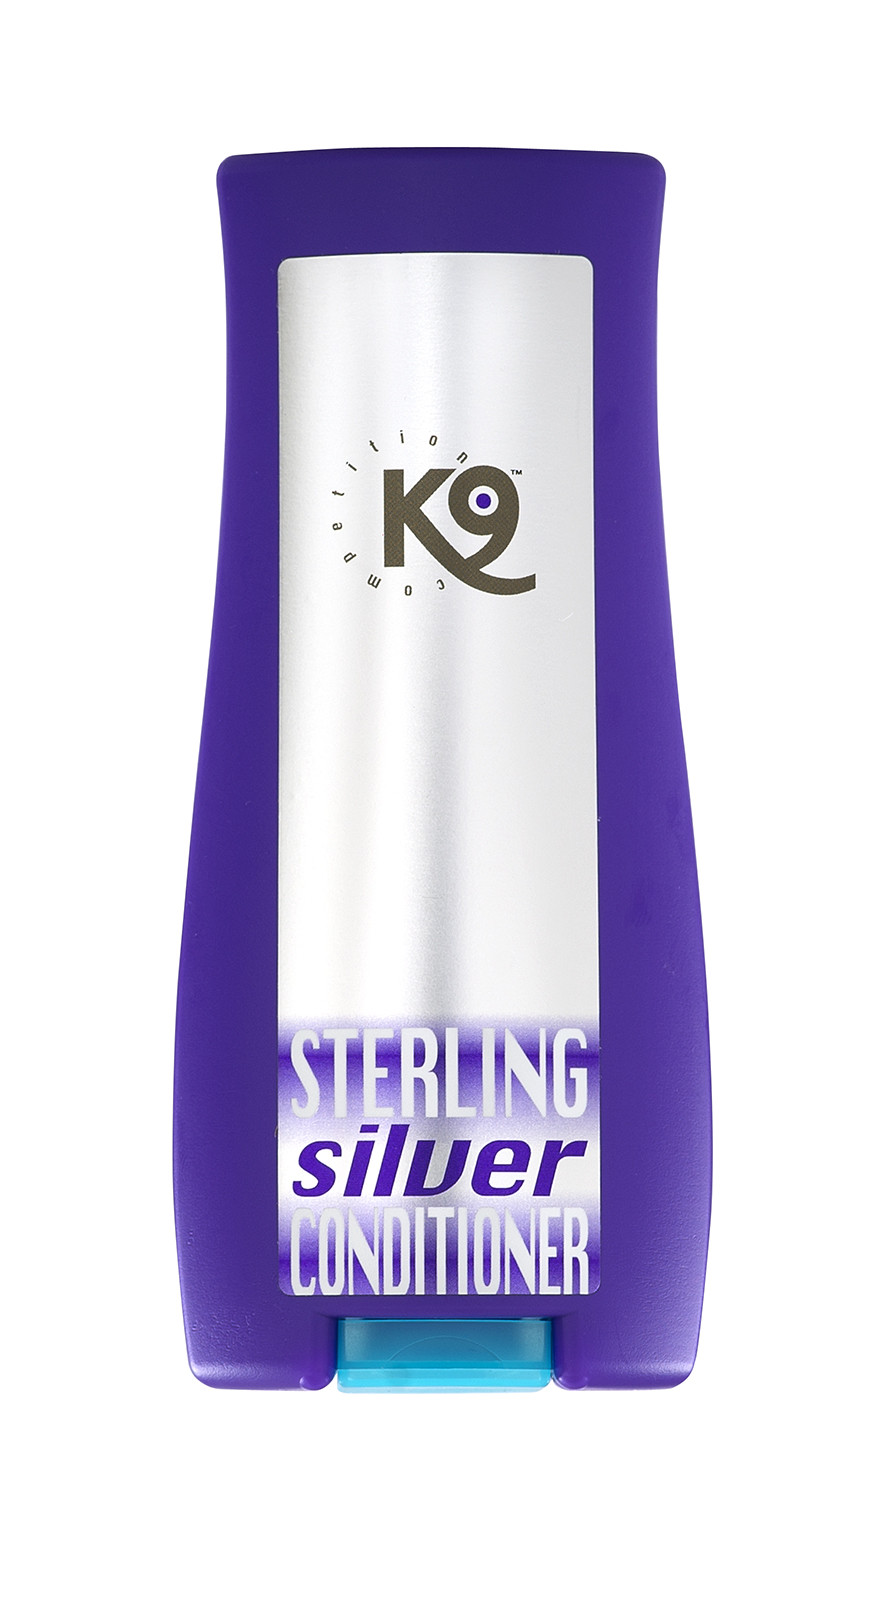 K9 Horse STERLING SILVER CONDITIONER